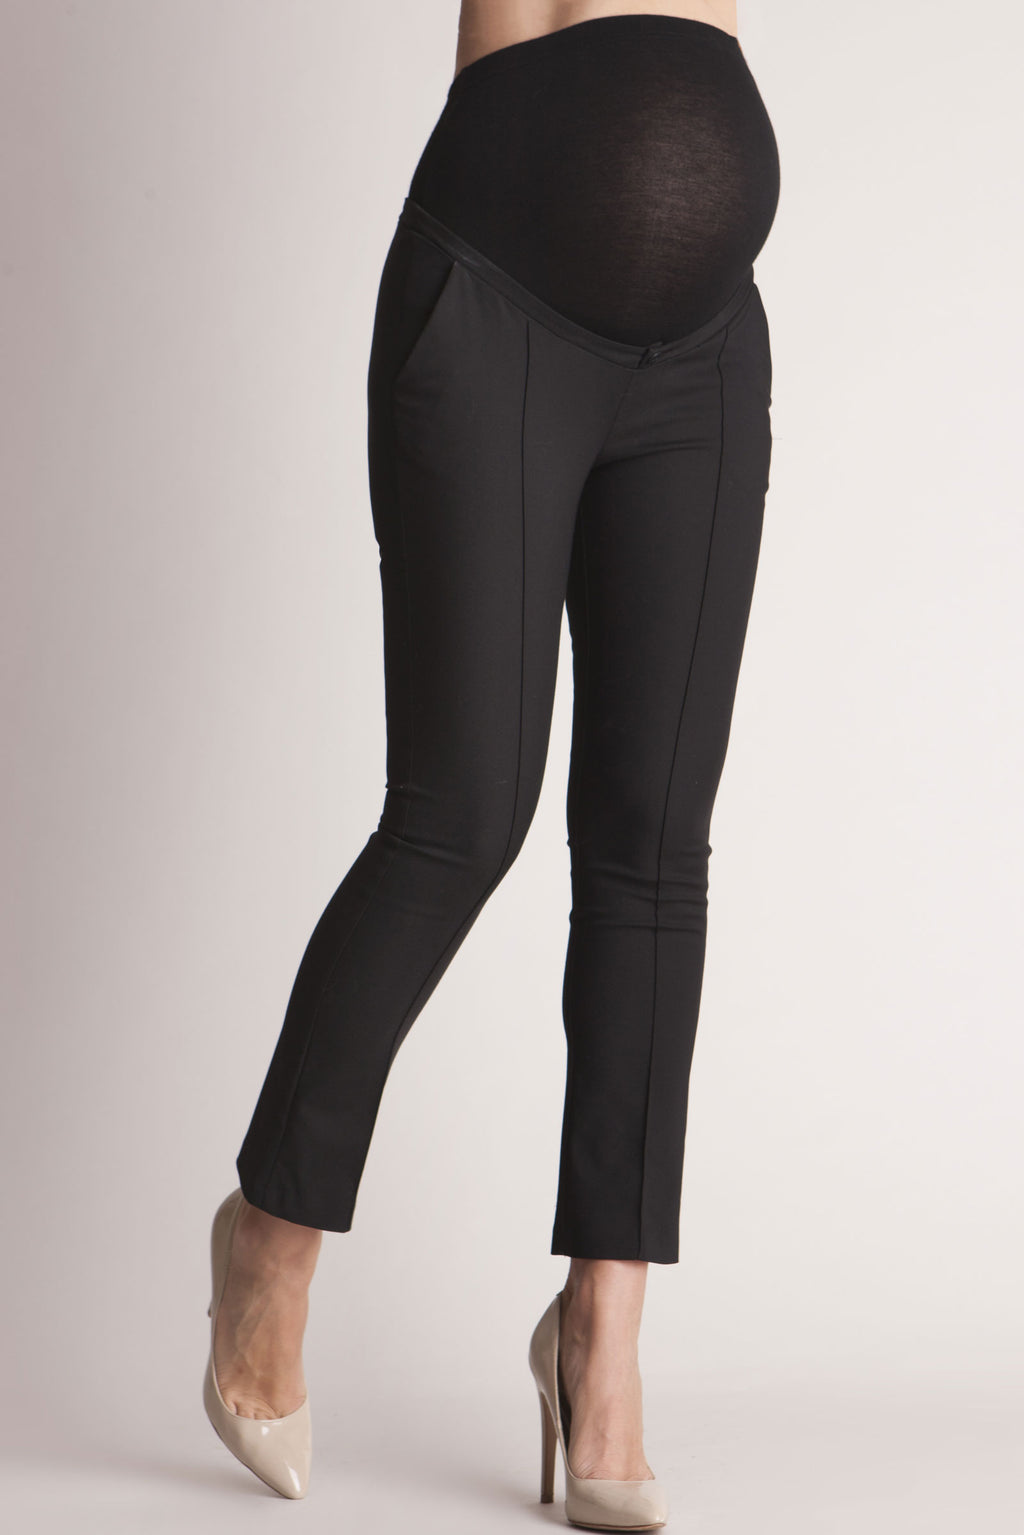 Seraphine Cressida Cropped Maternity Pants